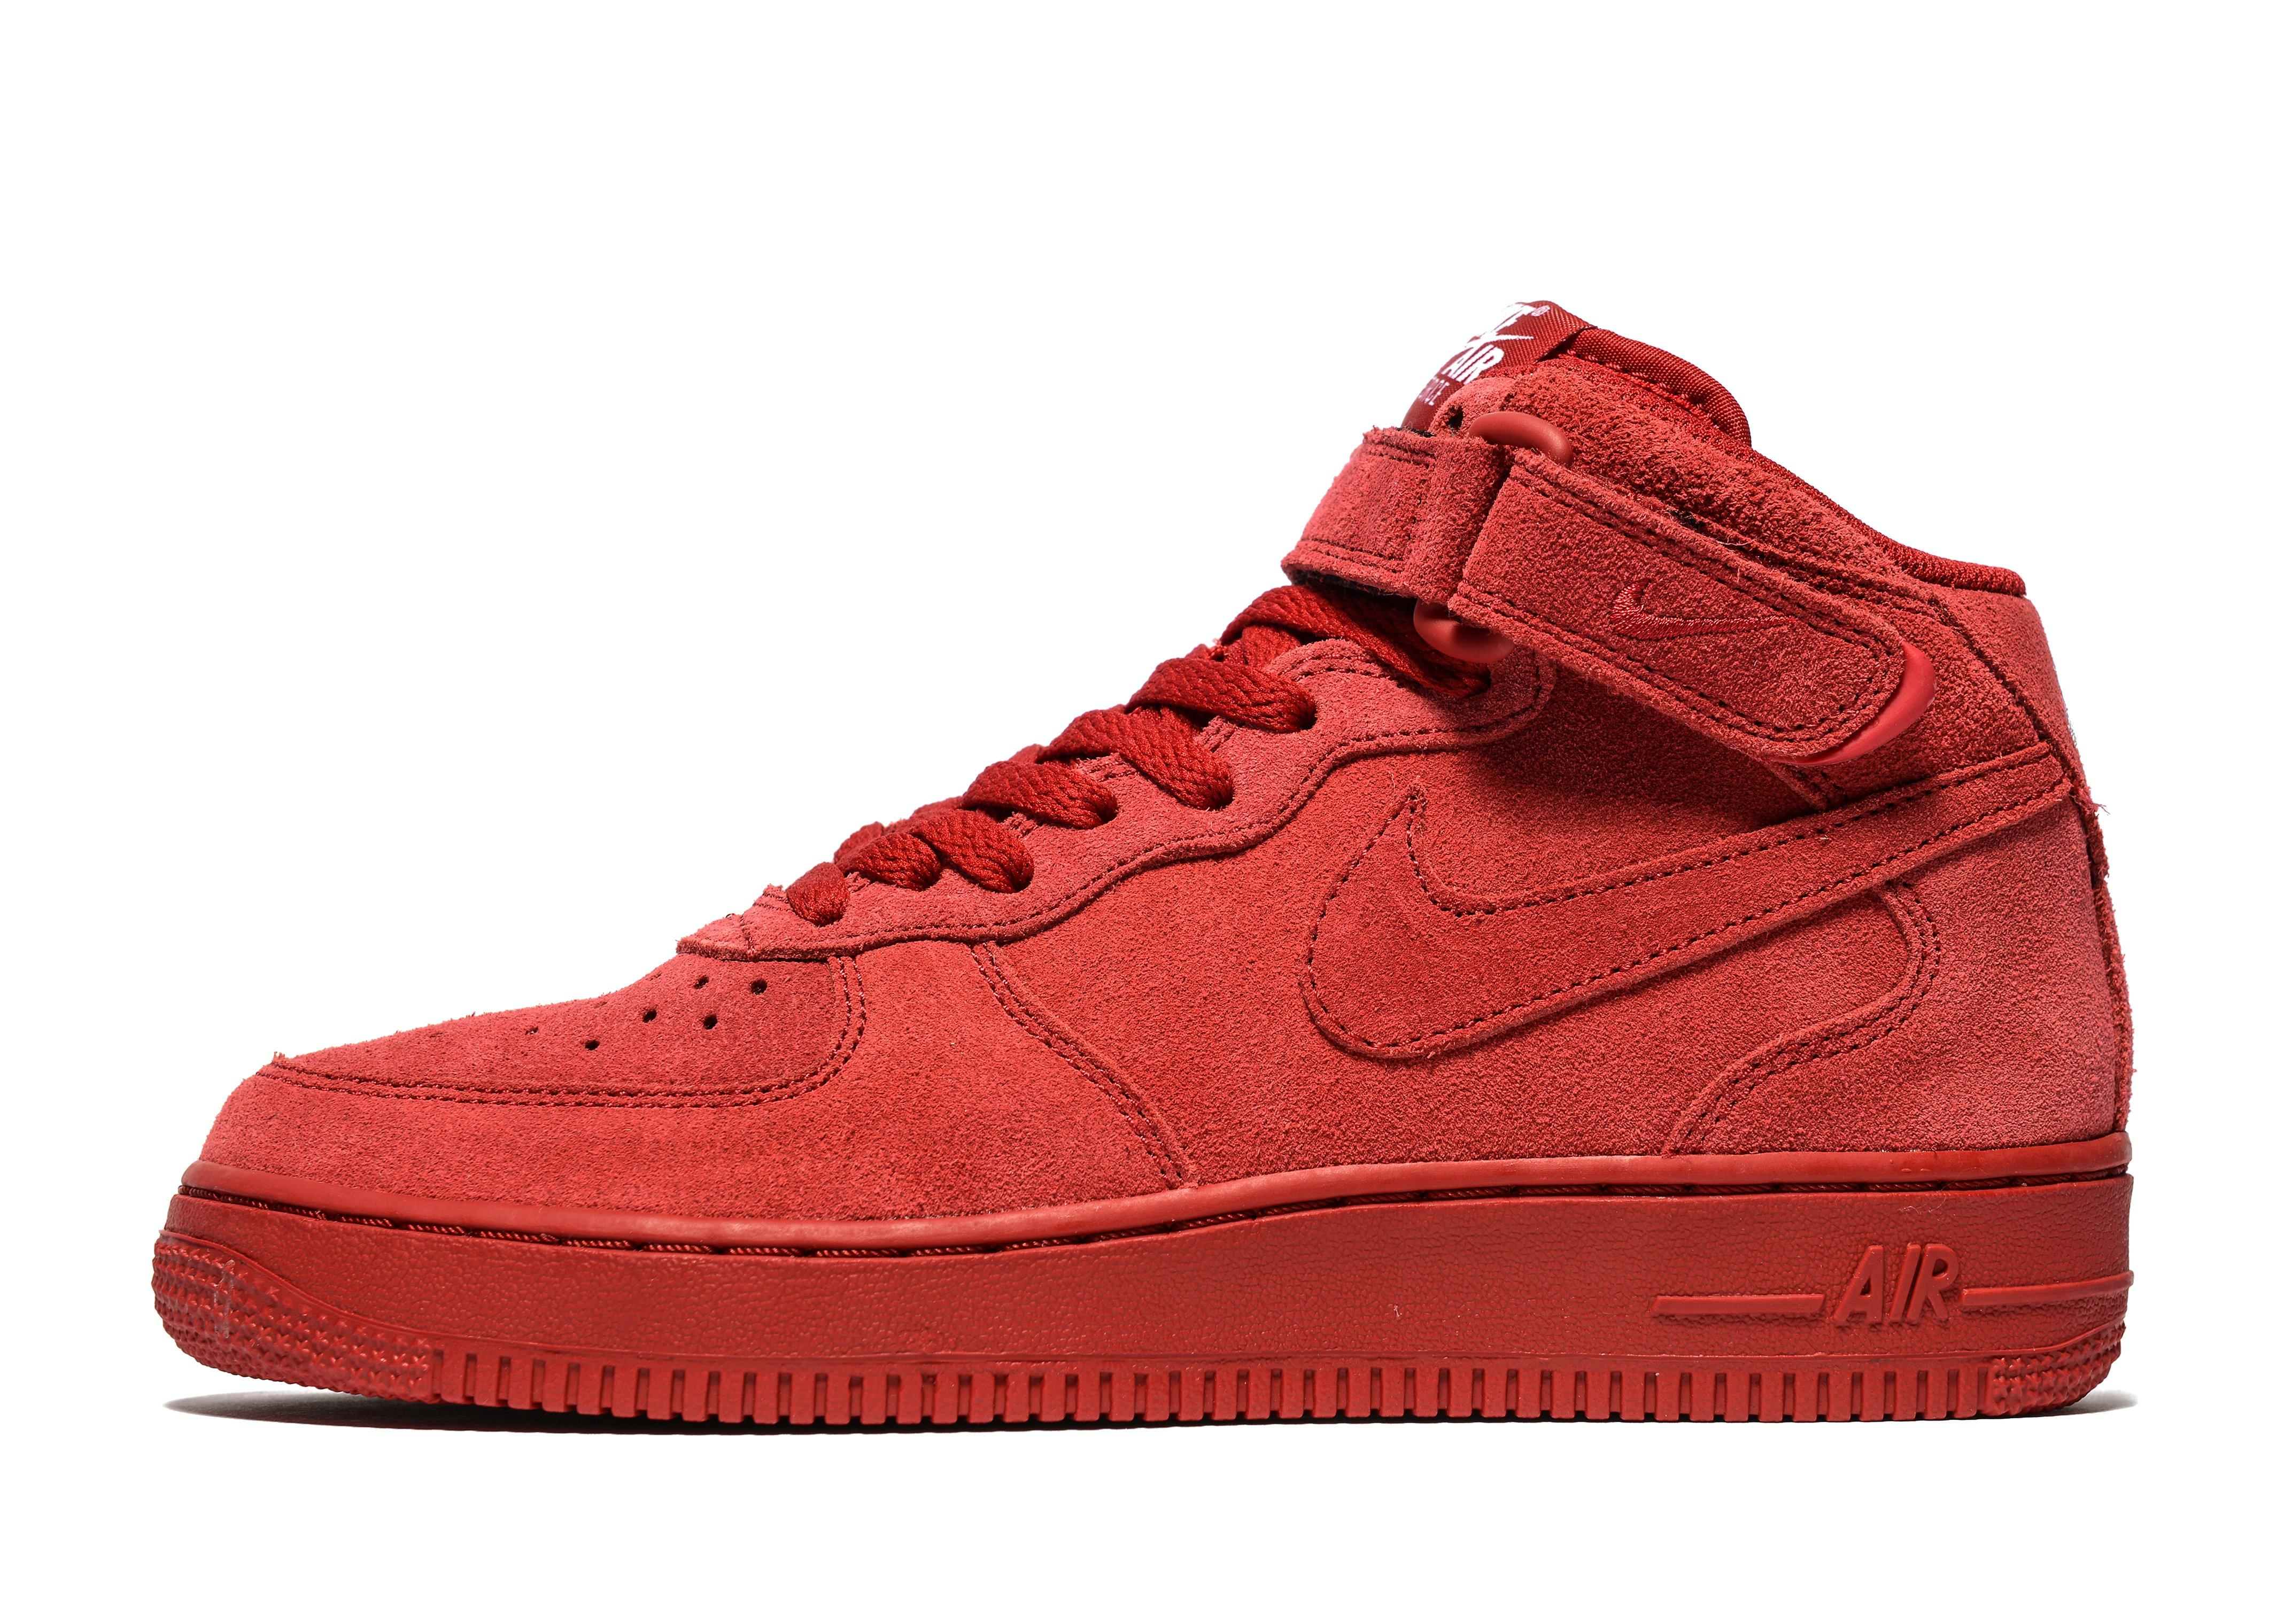 Nike Air Force 1 Mid Junior extrêmement rabais vente 100% authentique avec mastercard vente Ab9Zxa7